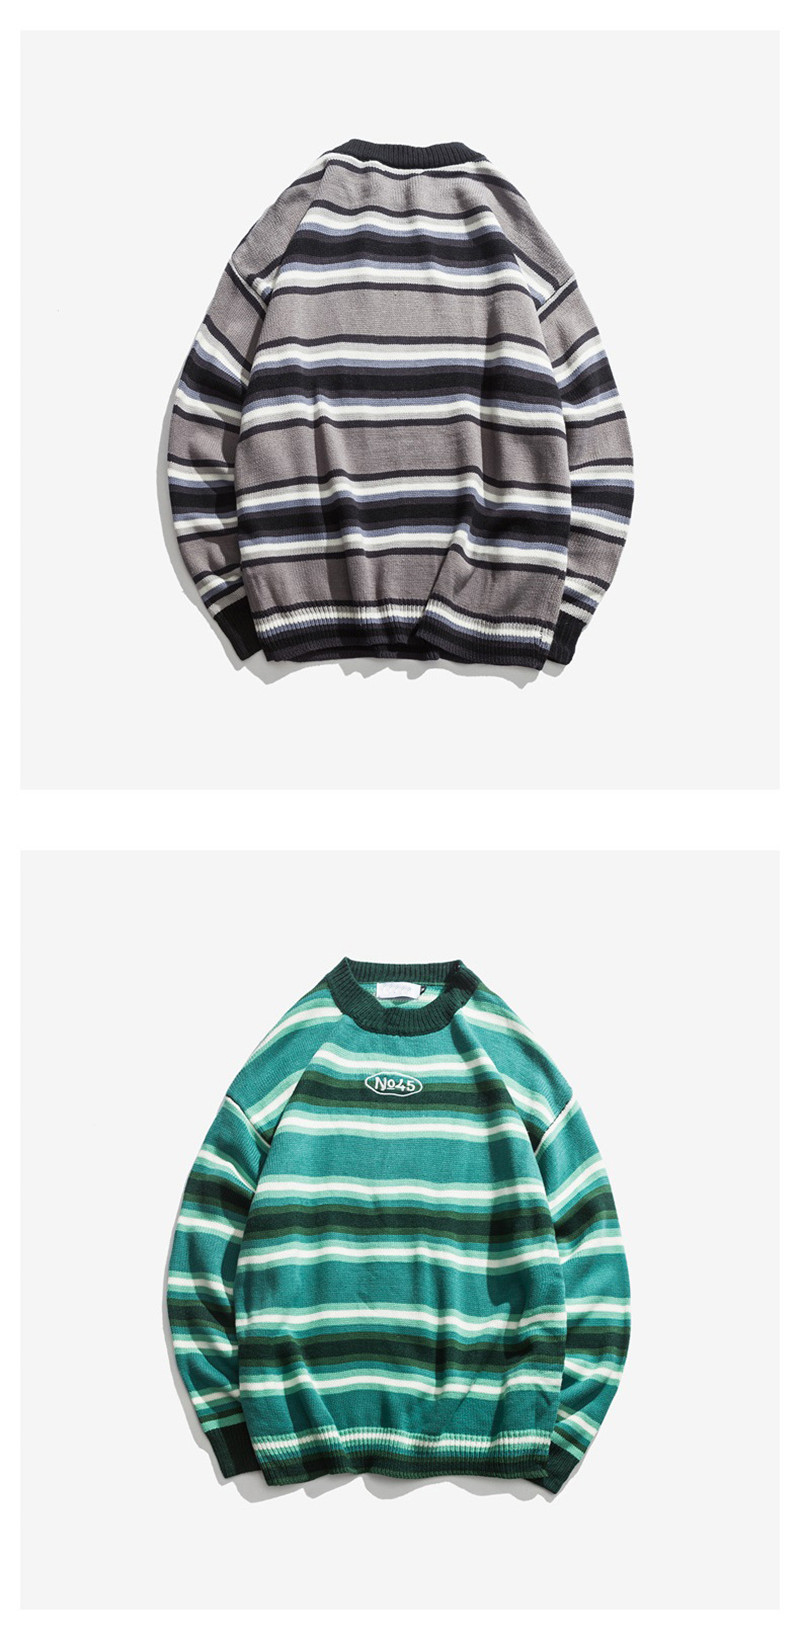 Knitted Japanese Harajuku Style Striped Sweater for Men Urban Boys Street Wear Crewneck Embroidery Pullover Jumper Oversized 9